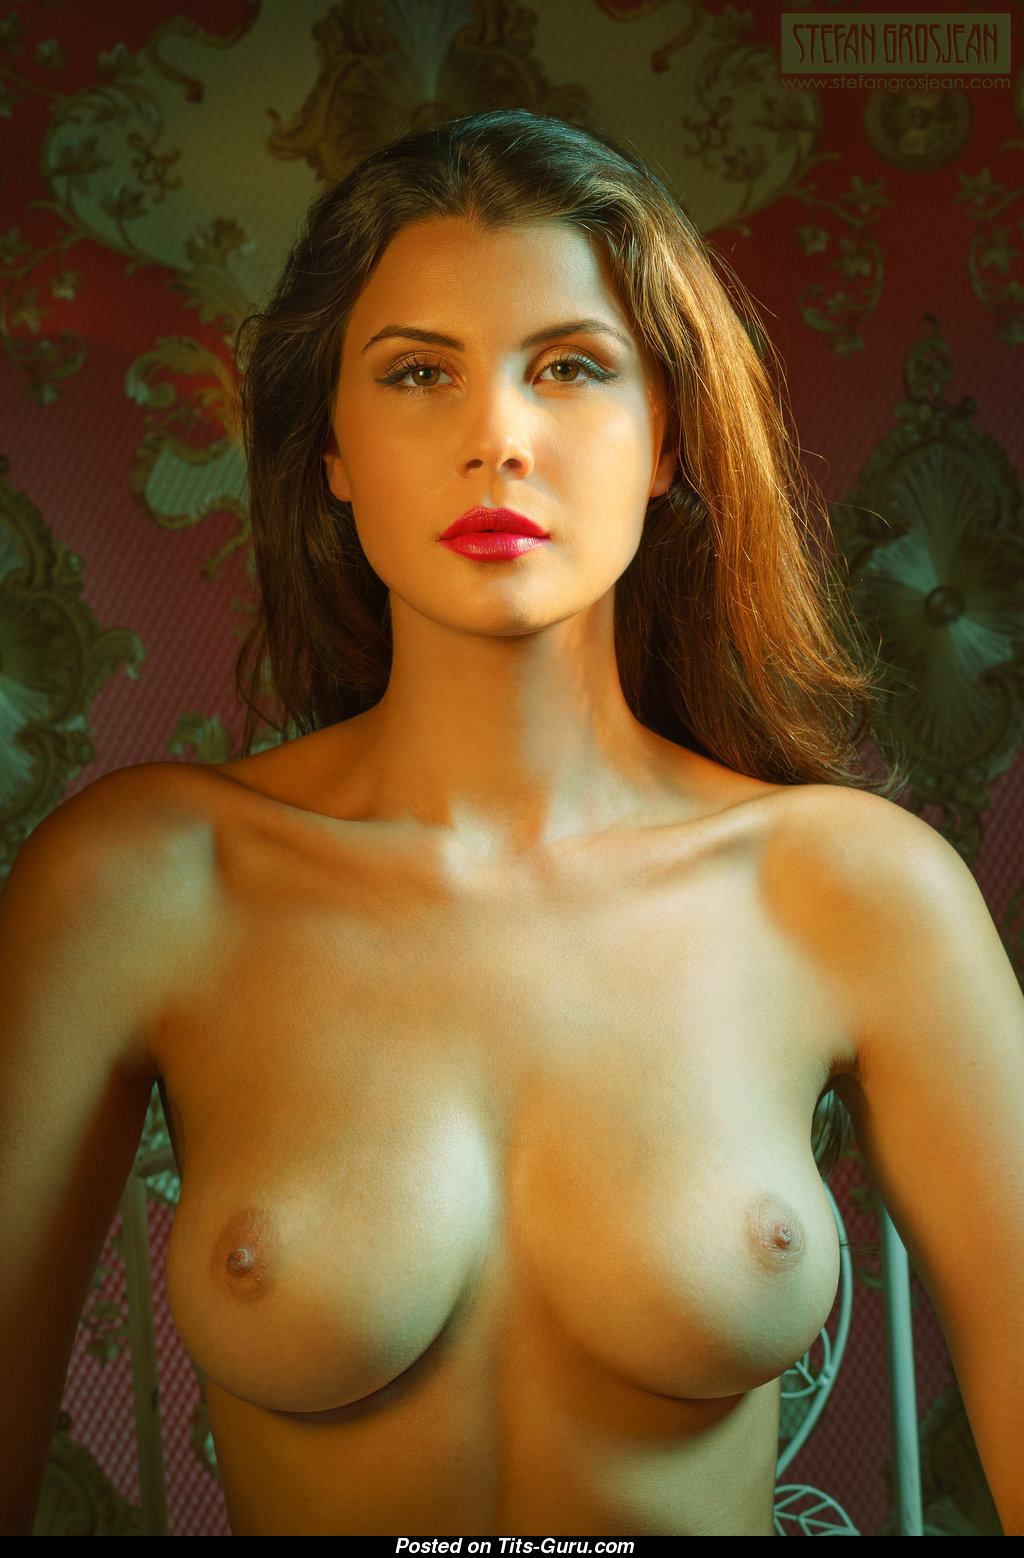 Olga Kamińska - Brunette with Bare Mid Size Melons Sexual ...